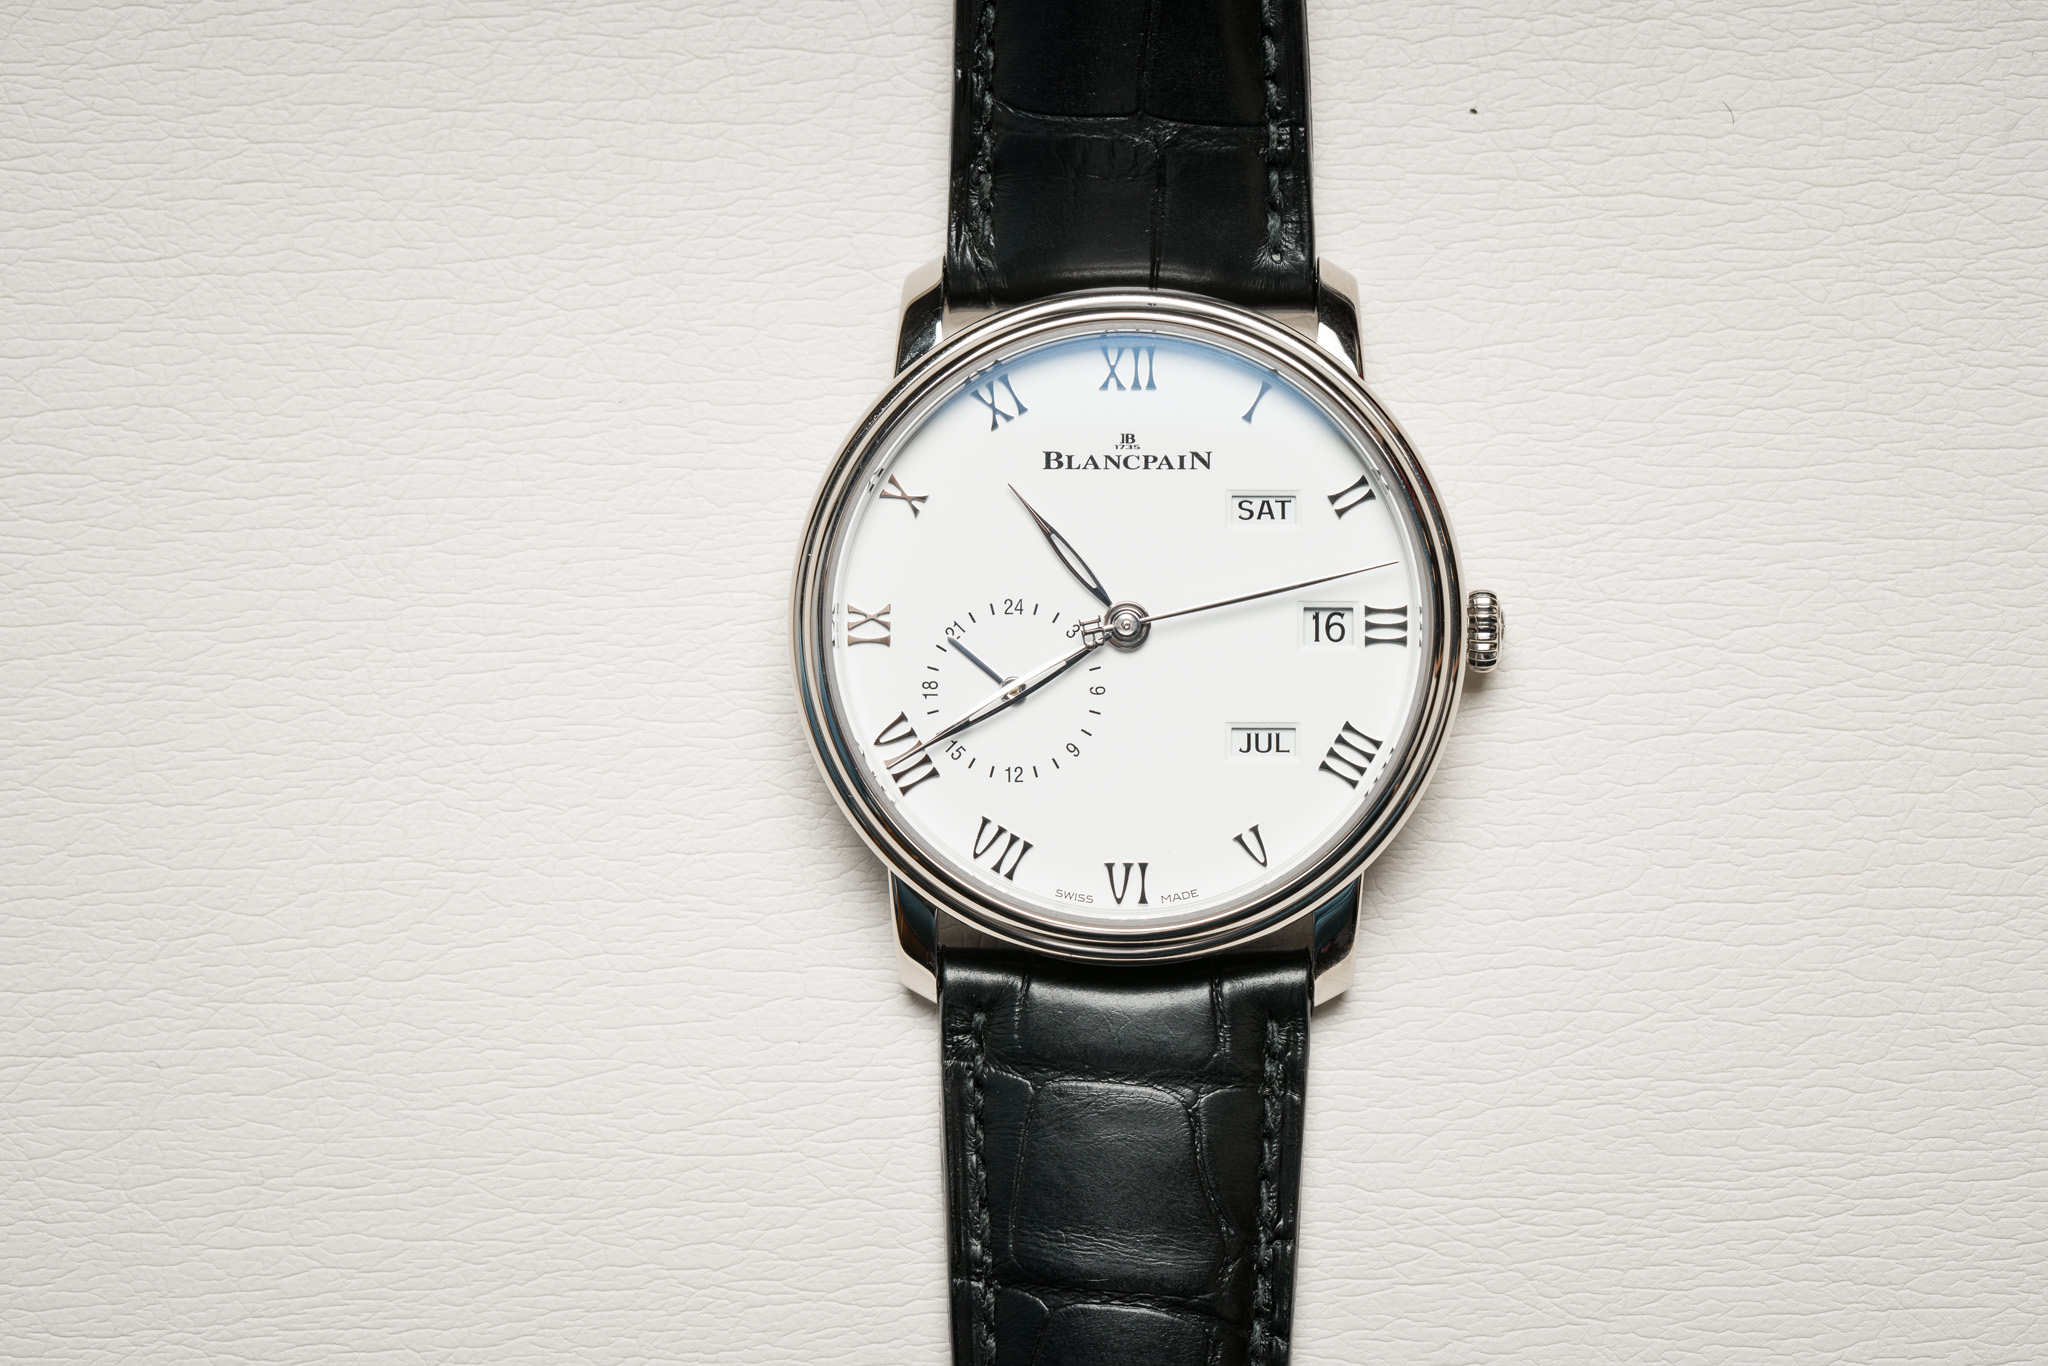 Annual Calendar Blancpain GMT from the Villeret collection